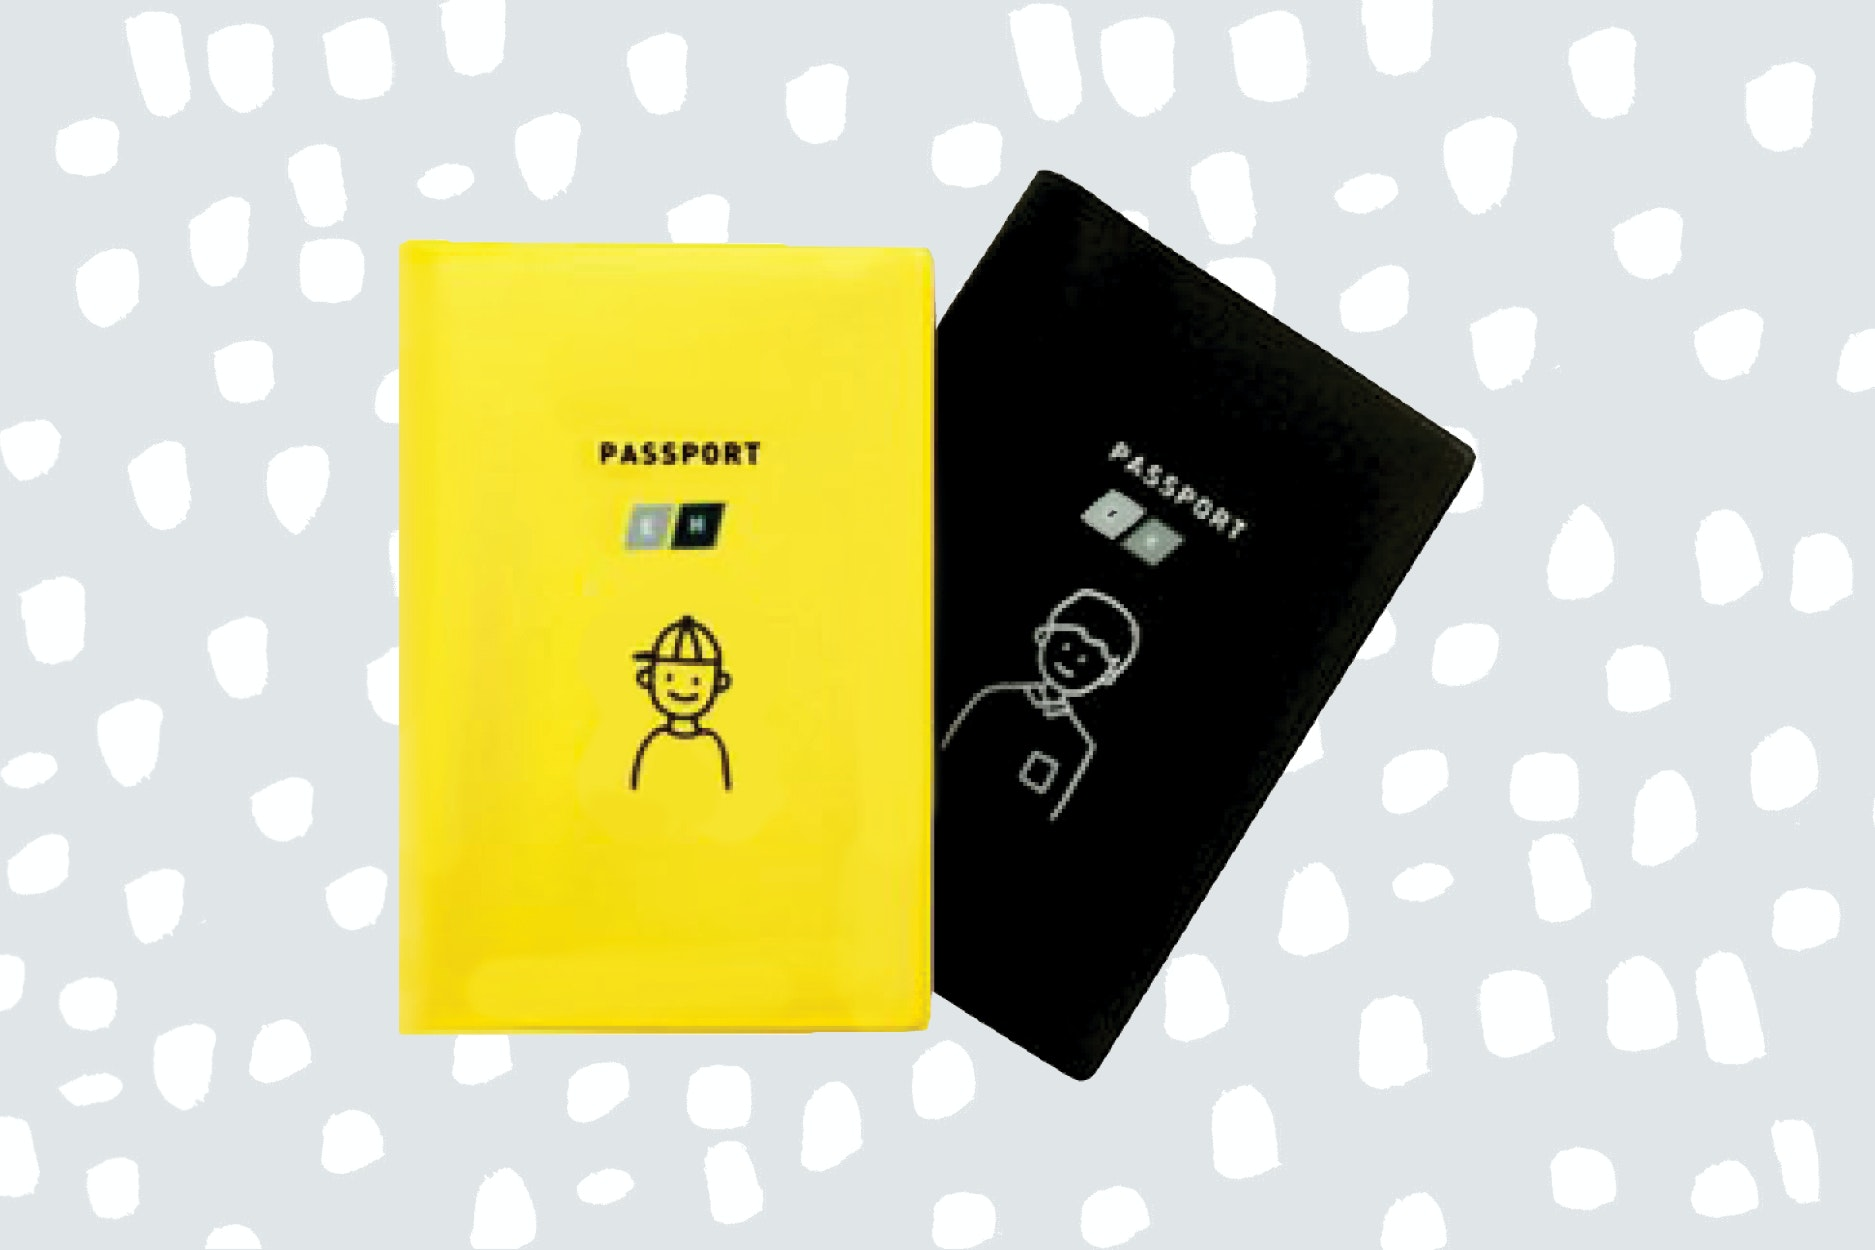 Passports stay pristine in funky cases from Duru Naru.